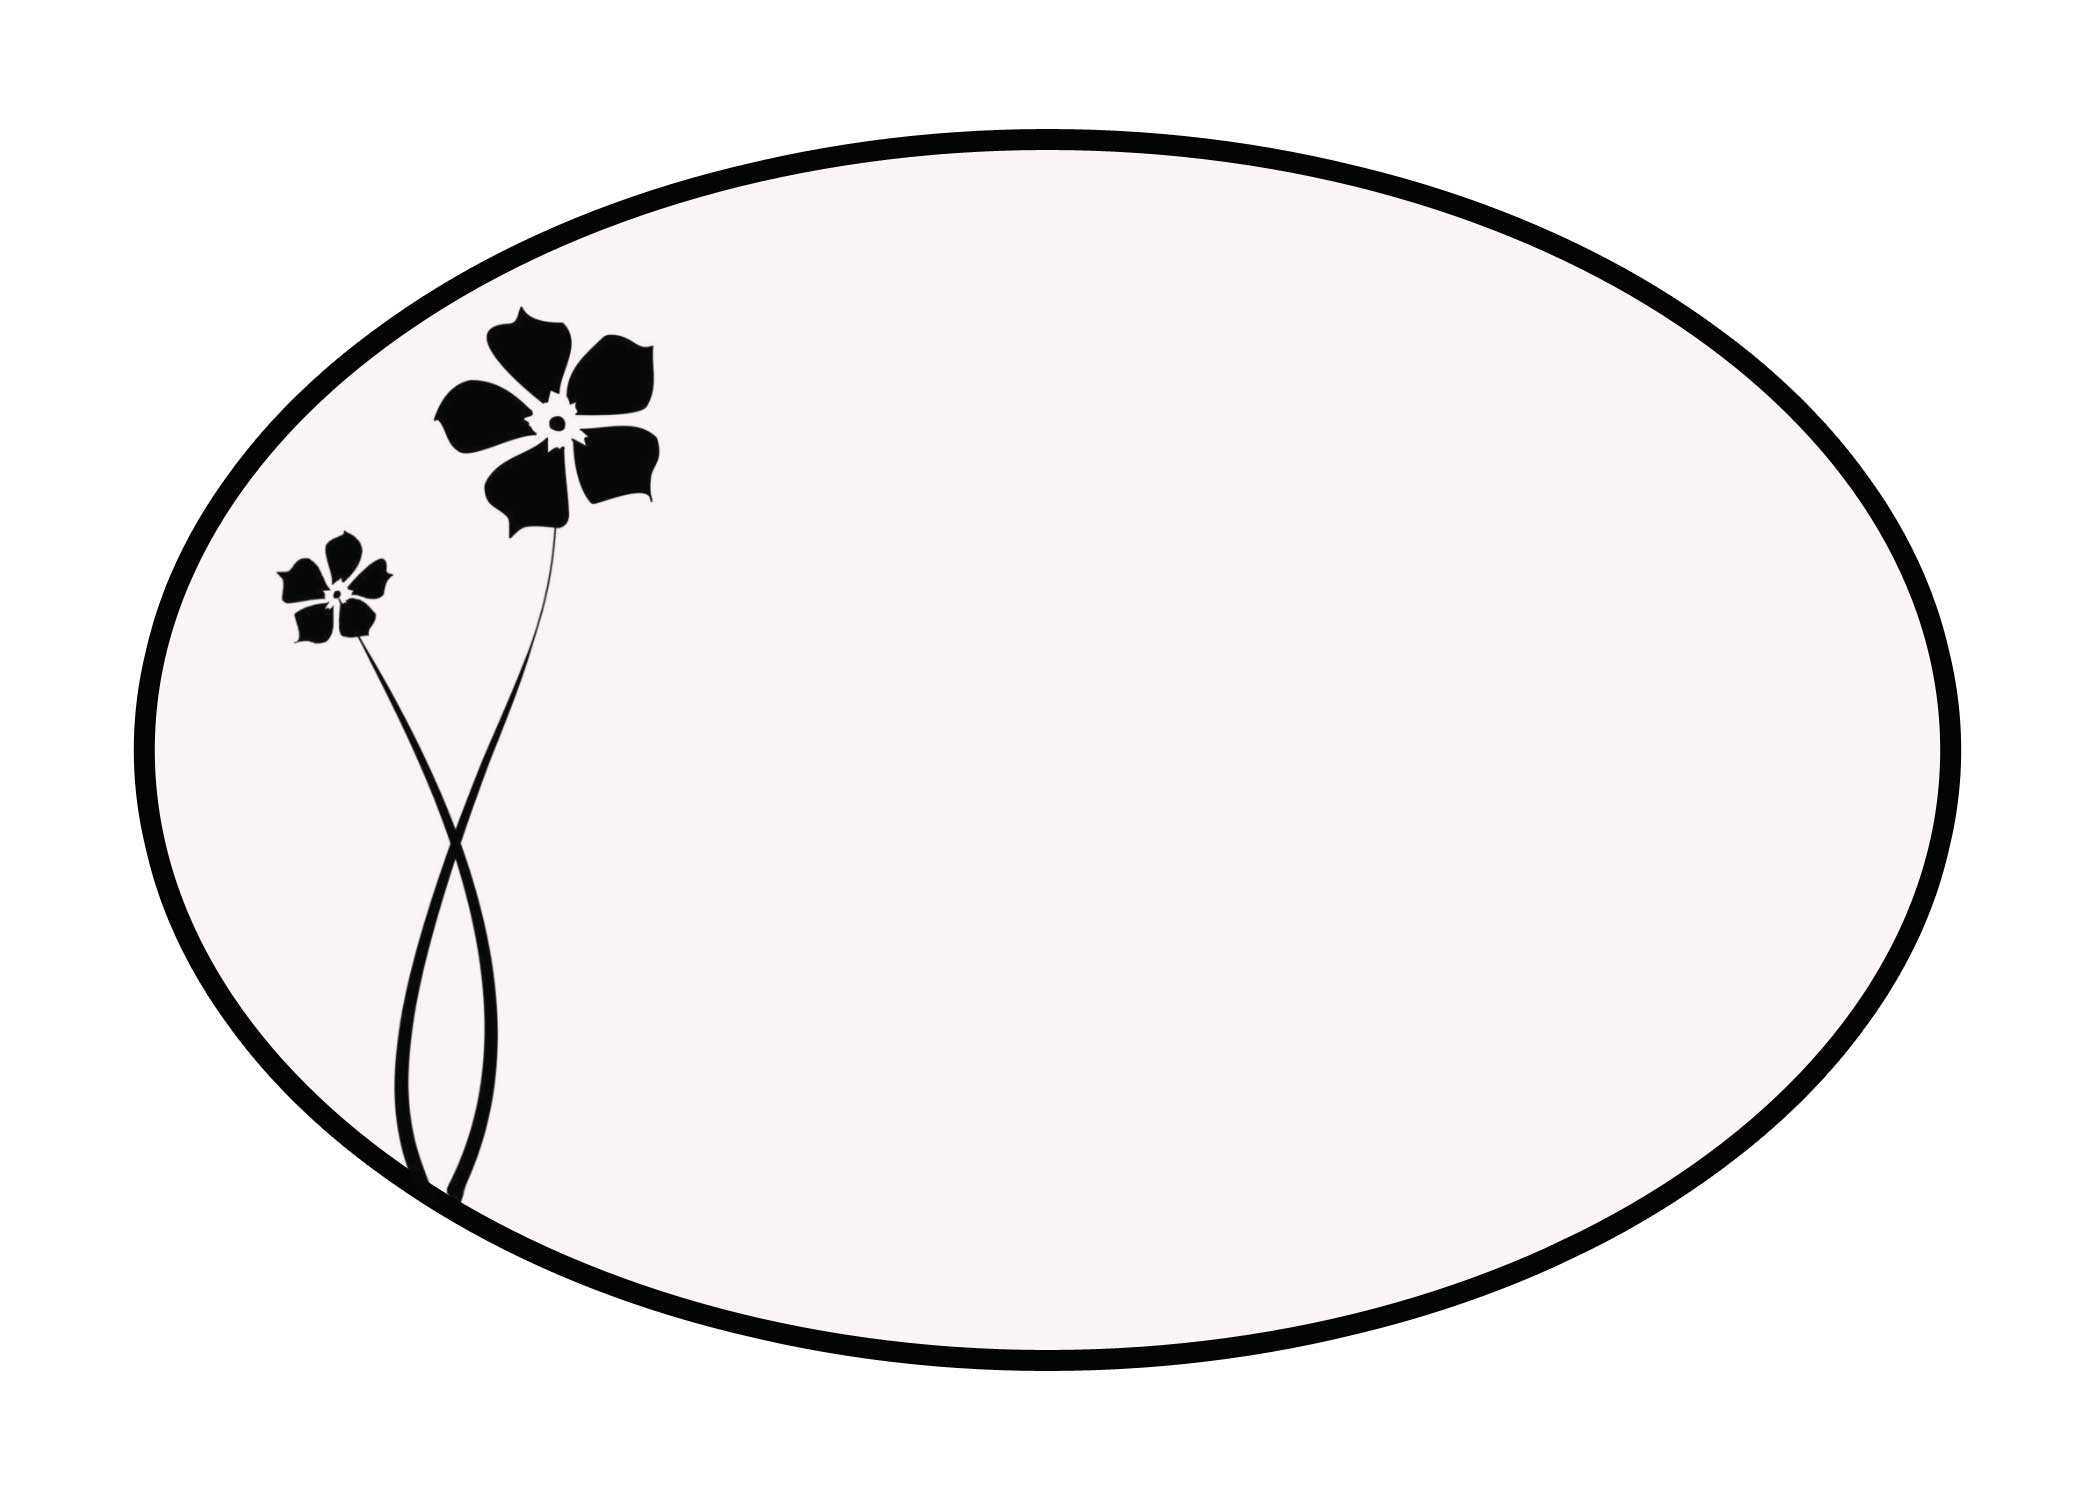 Oval Shape Clipart Black And White.